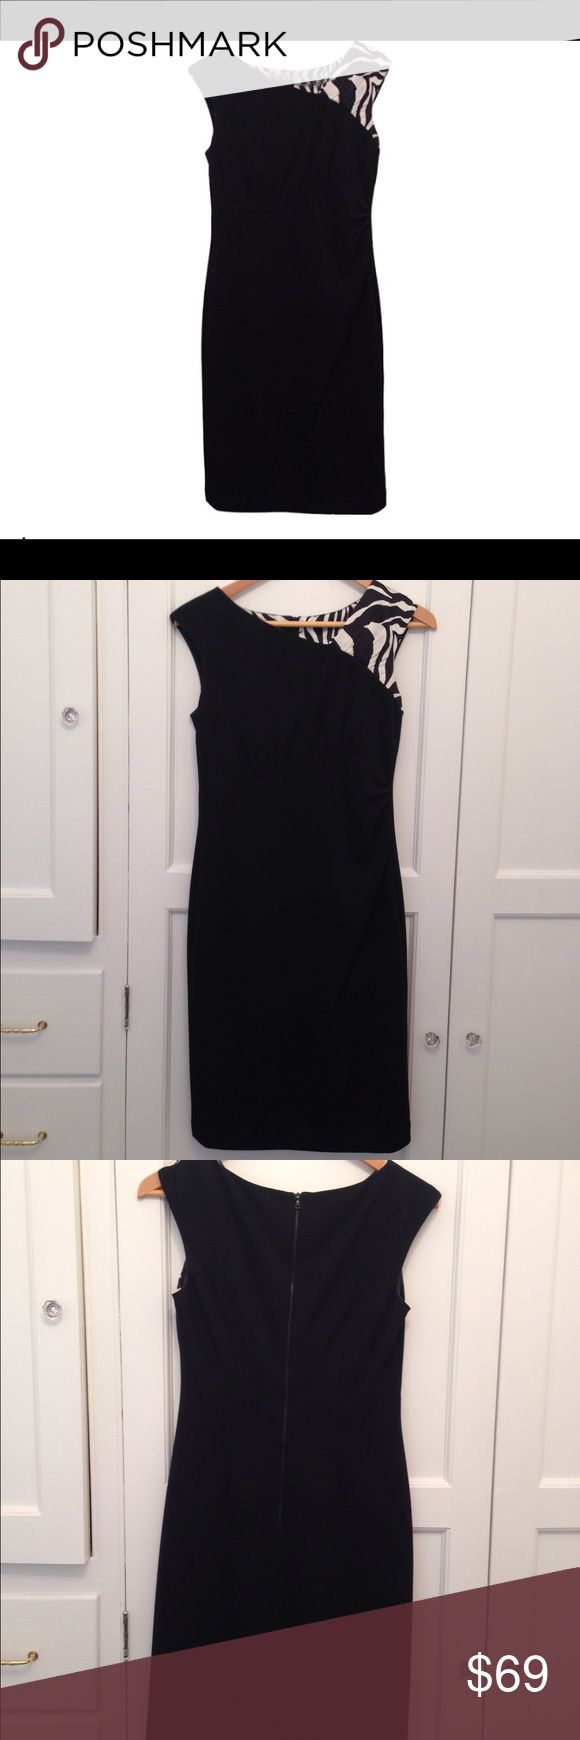 NWOT Kay Unger Asymmetrical Dress Beautiful elegant Kay Unger dress - size 4 -never worn! Side rouching and zebra shoulder give this sexy black number just the right amount of flair!                                                **Can sell for less on Mercari** Kay Unger Dresses